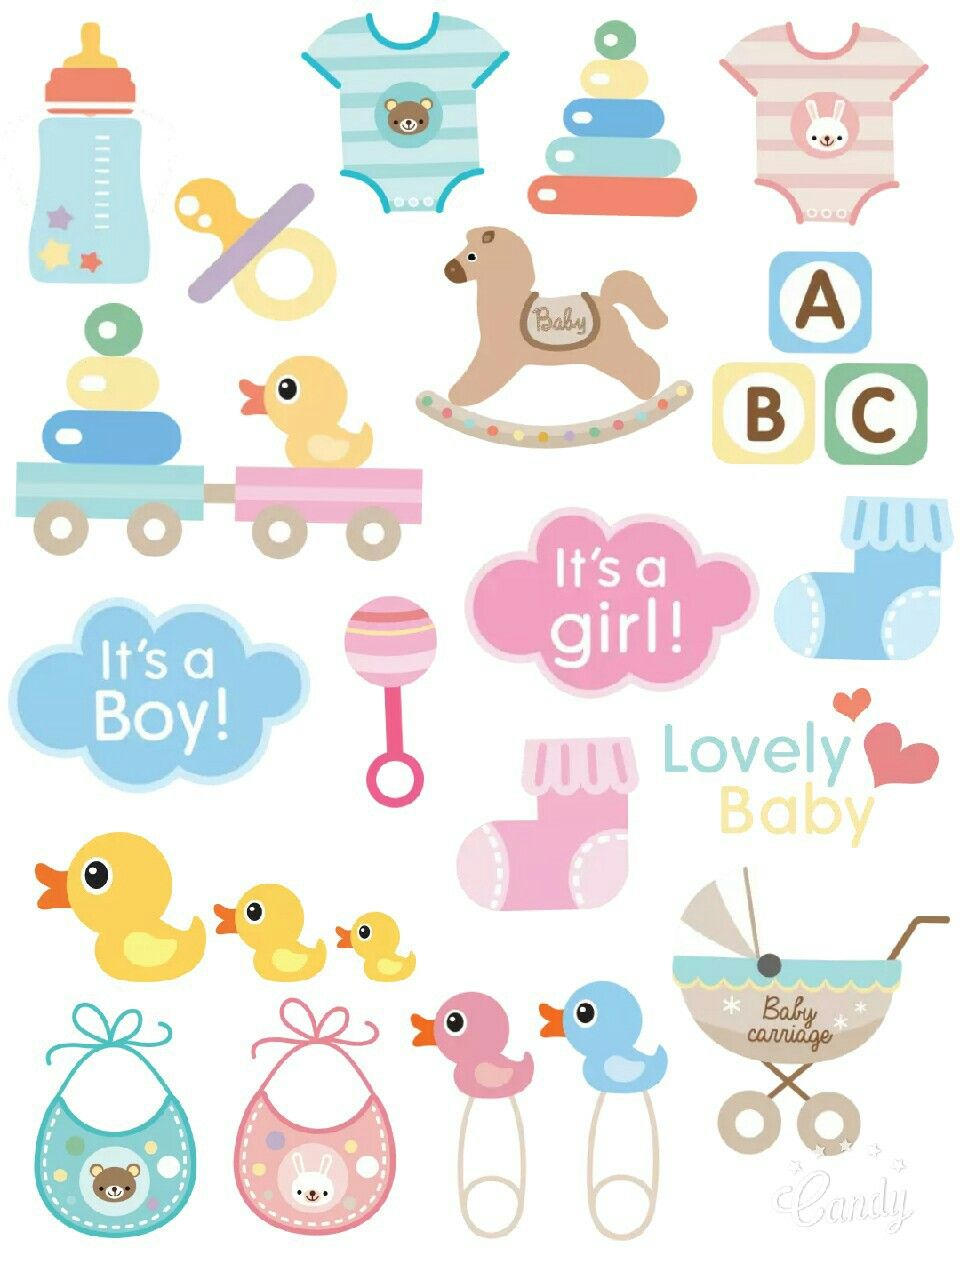 Babybaby - Sticker Printable… | Diy & Crafts | Baby, Baby - Pin The Dummy On The Baby Free Printable